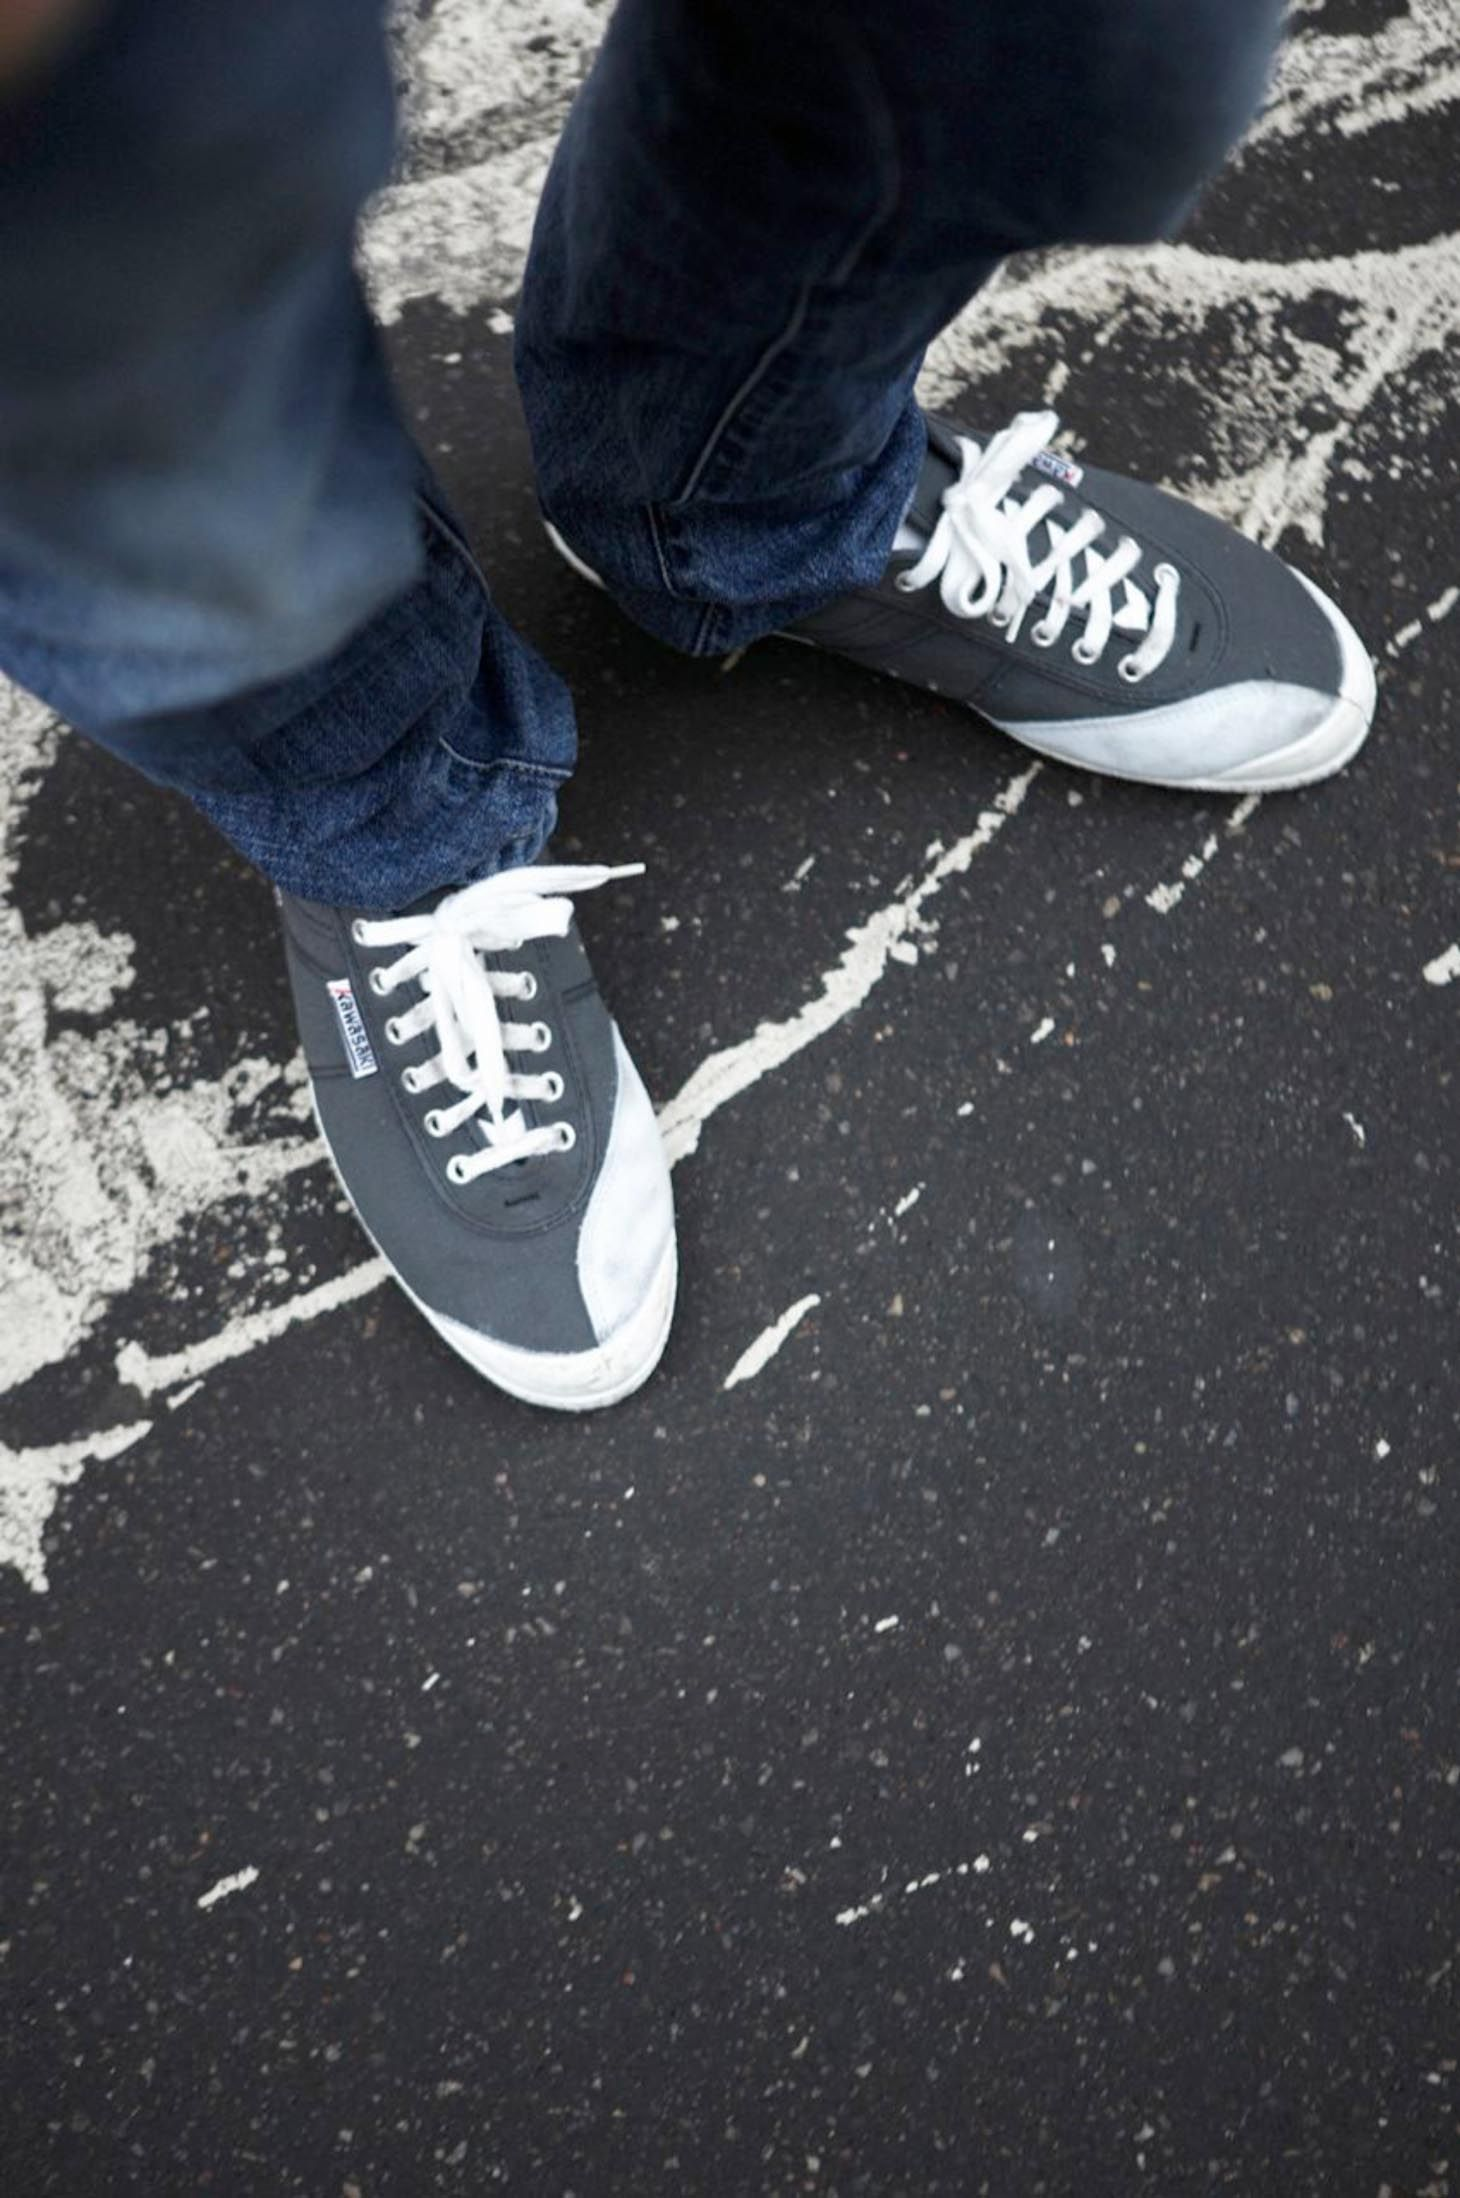 Backyard canvas sneakers from Denmark.  In the US for the first time in its 44 year history.  Sneakers for men and women.  Clean Scandinavian design make this handmade sneaker from Denmark your go to shoe.